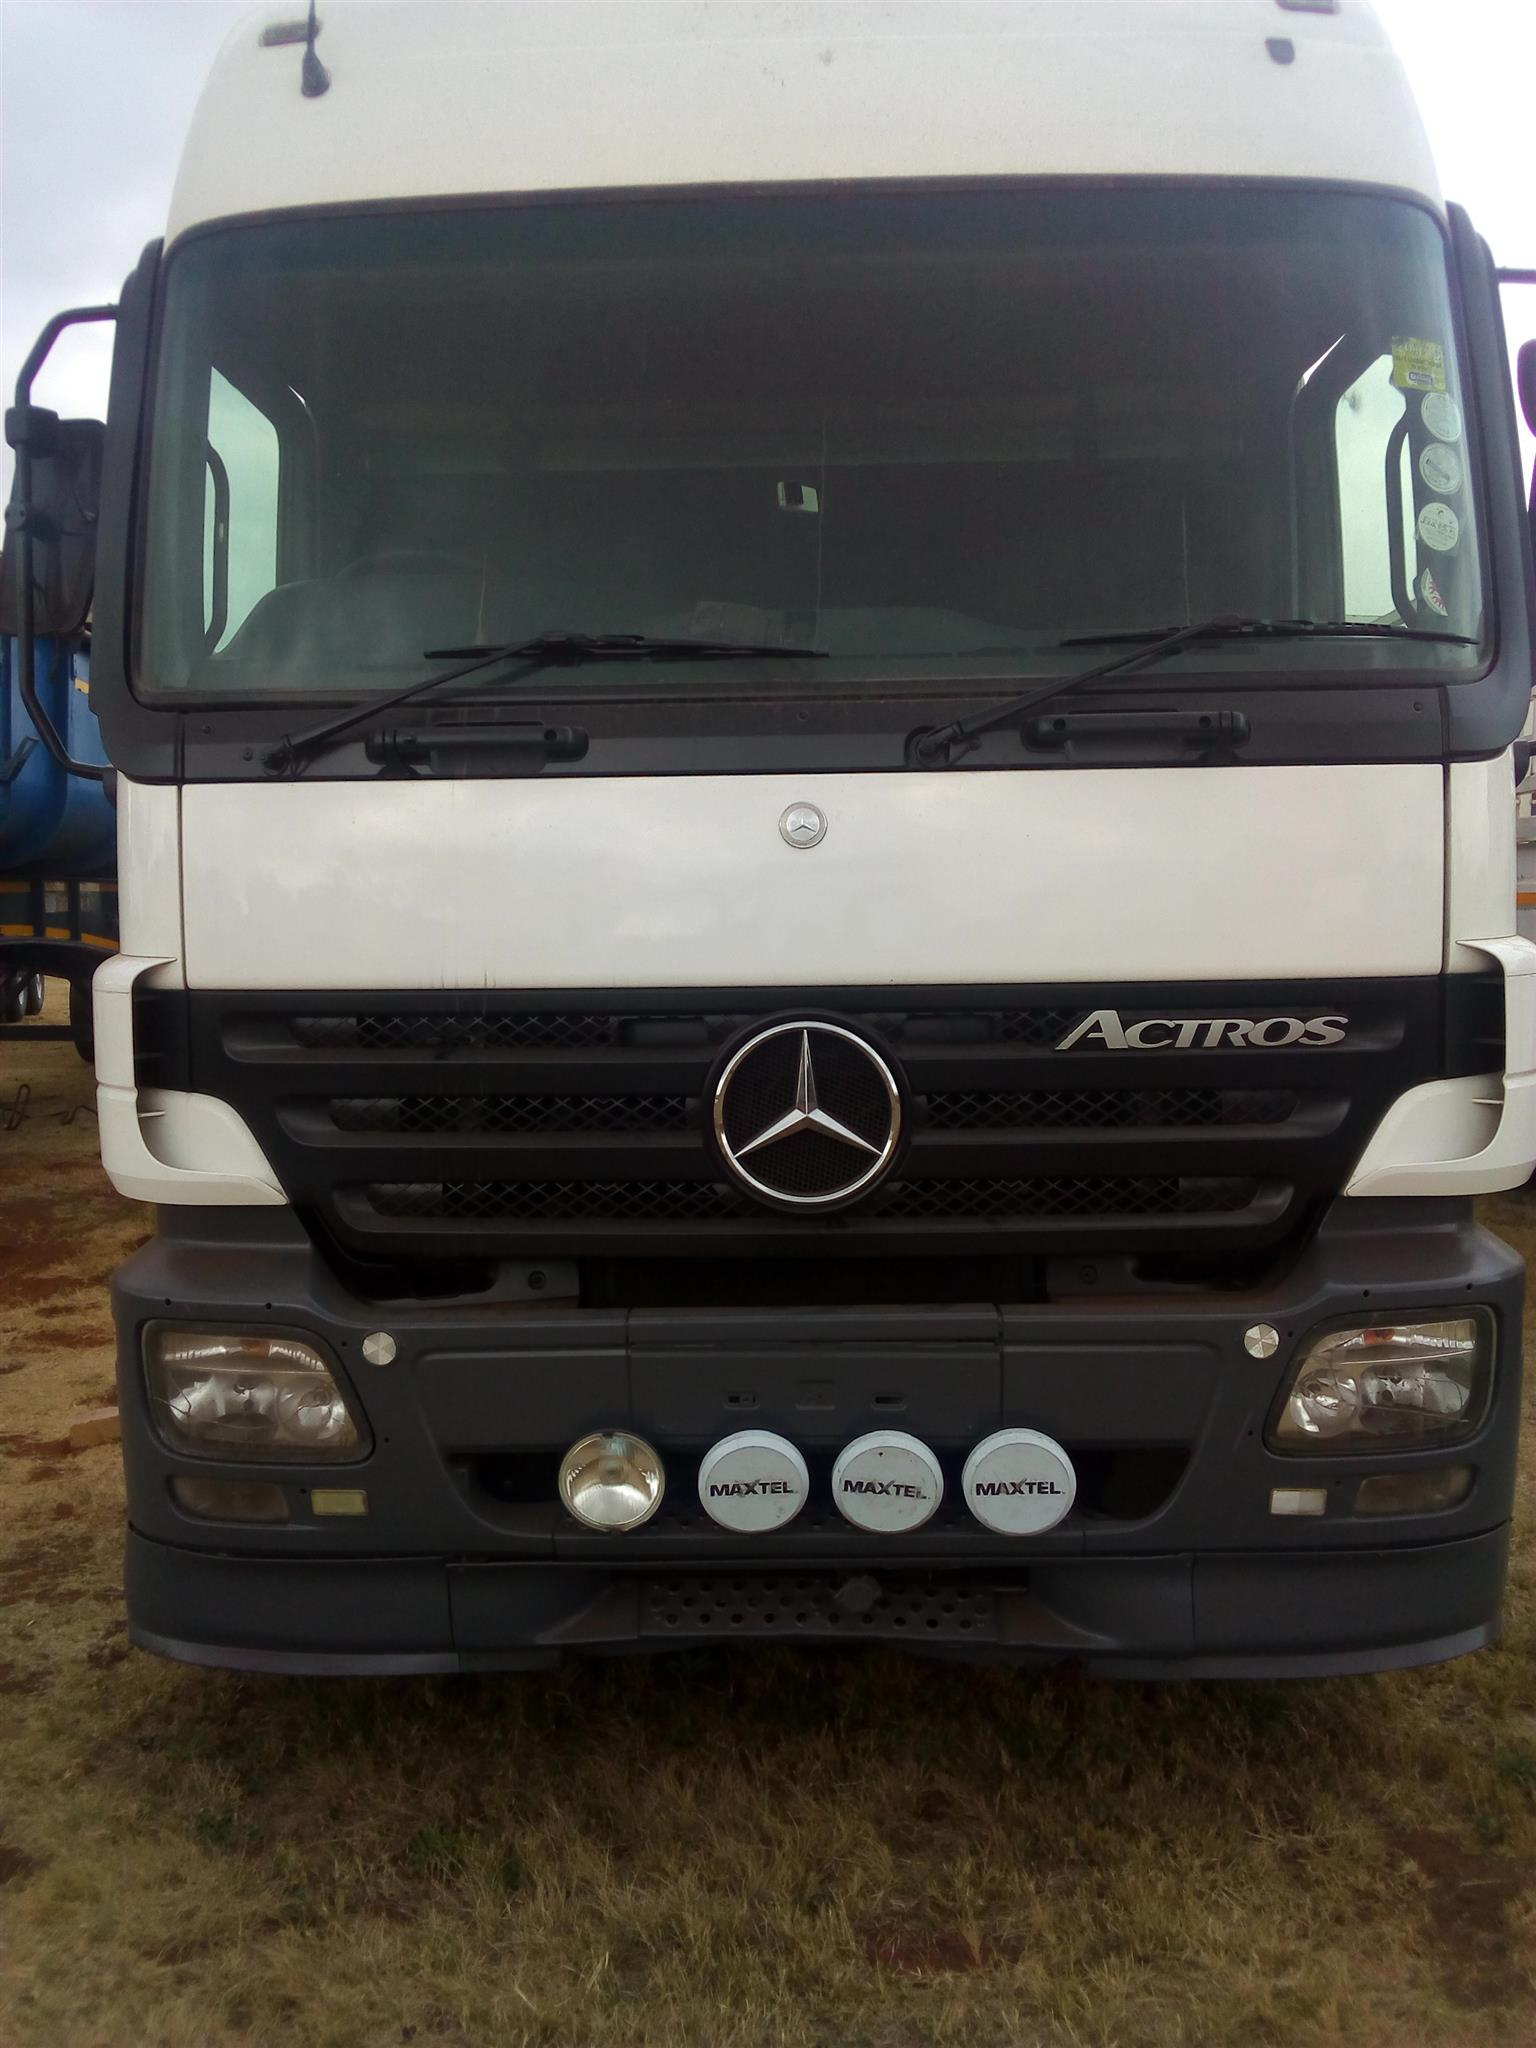 A MUST HAVE MERCEDES ACTROS COMBO